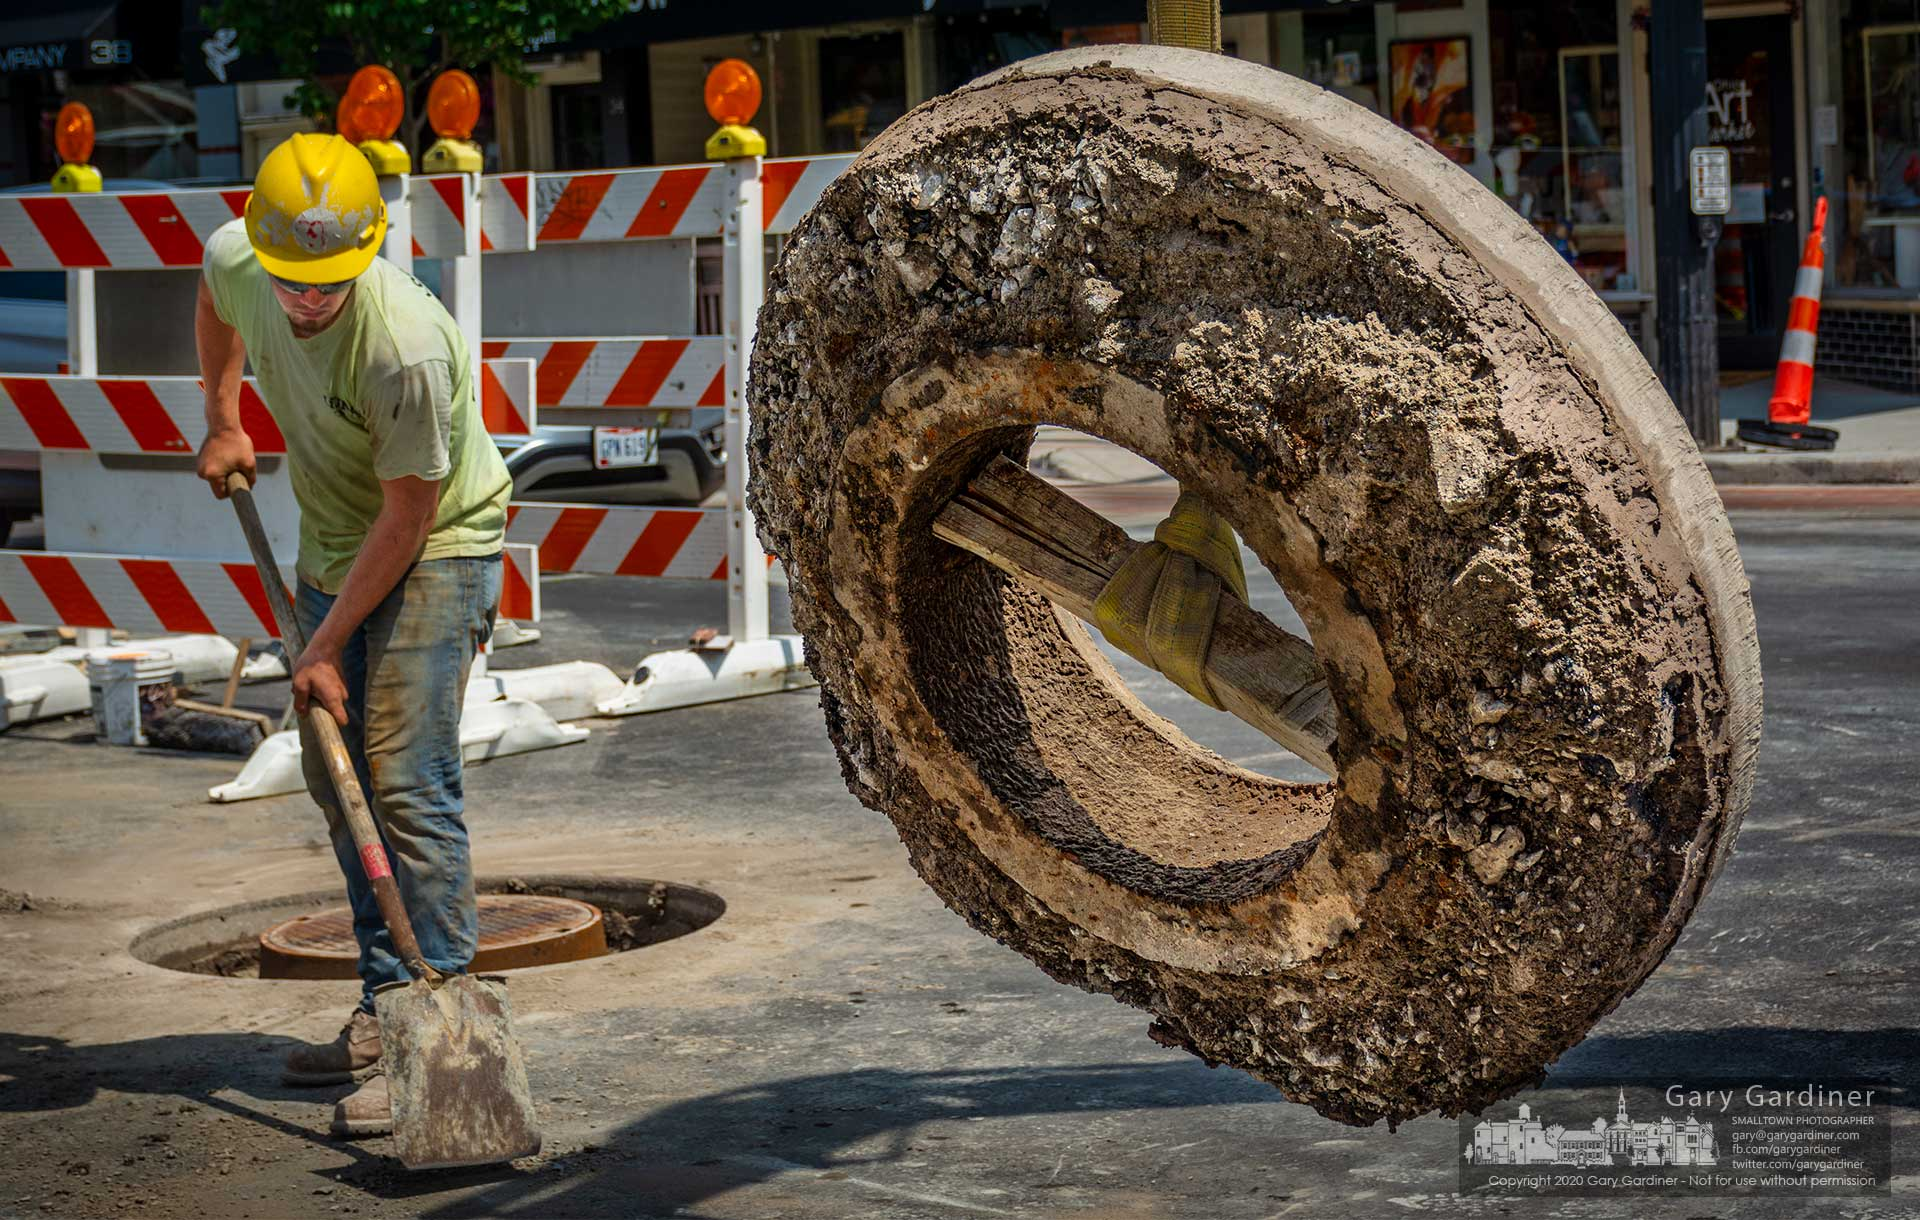 A worker clears debris around the concrete, asphalt, and steel donut removed from a manhole cover at State and Main where an upgraded cover will be installed after State Street was rebuilt. My Final Photo for Aug. 25, 2020.